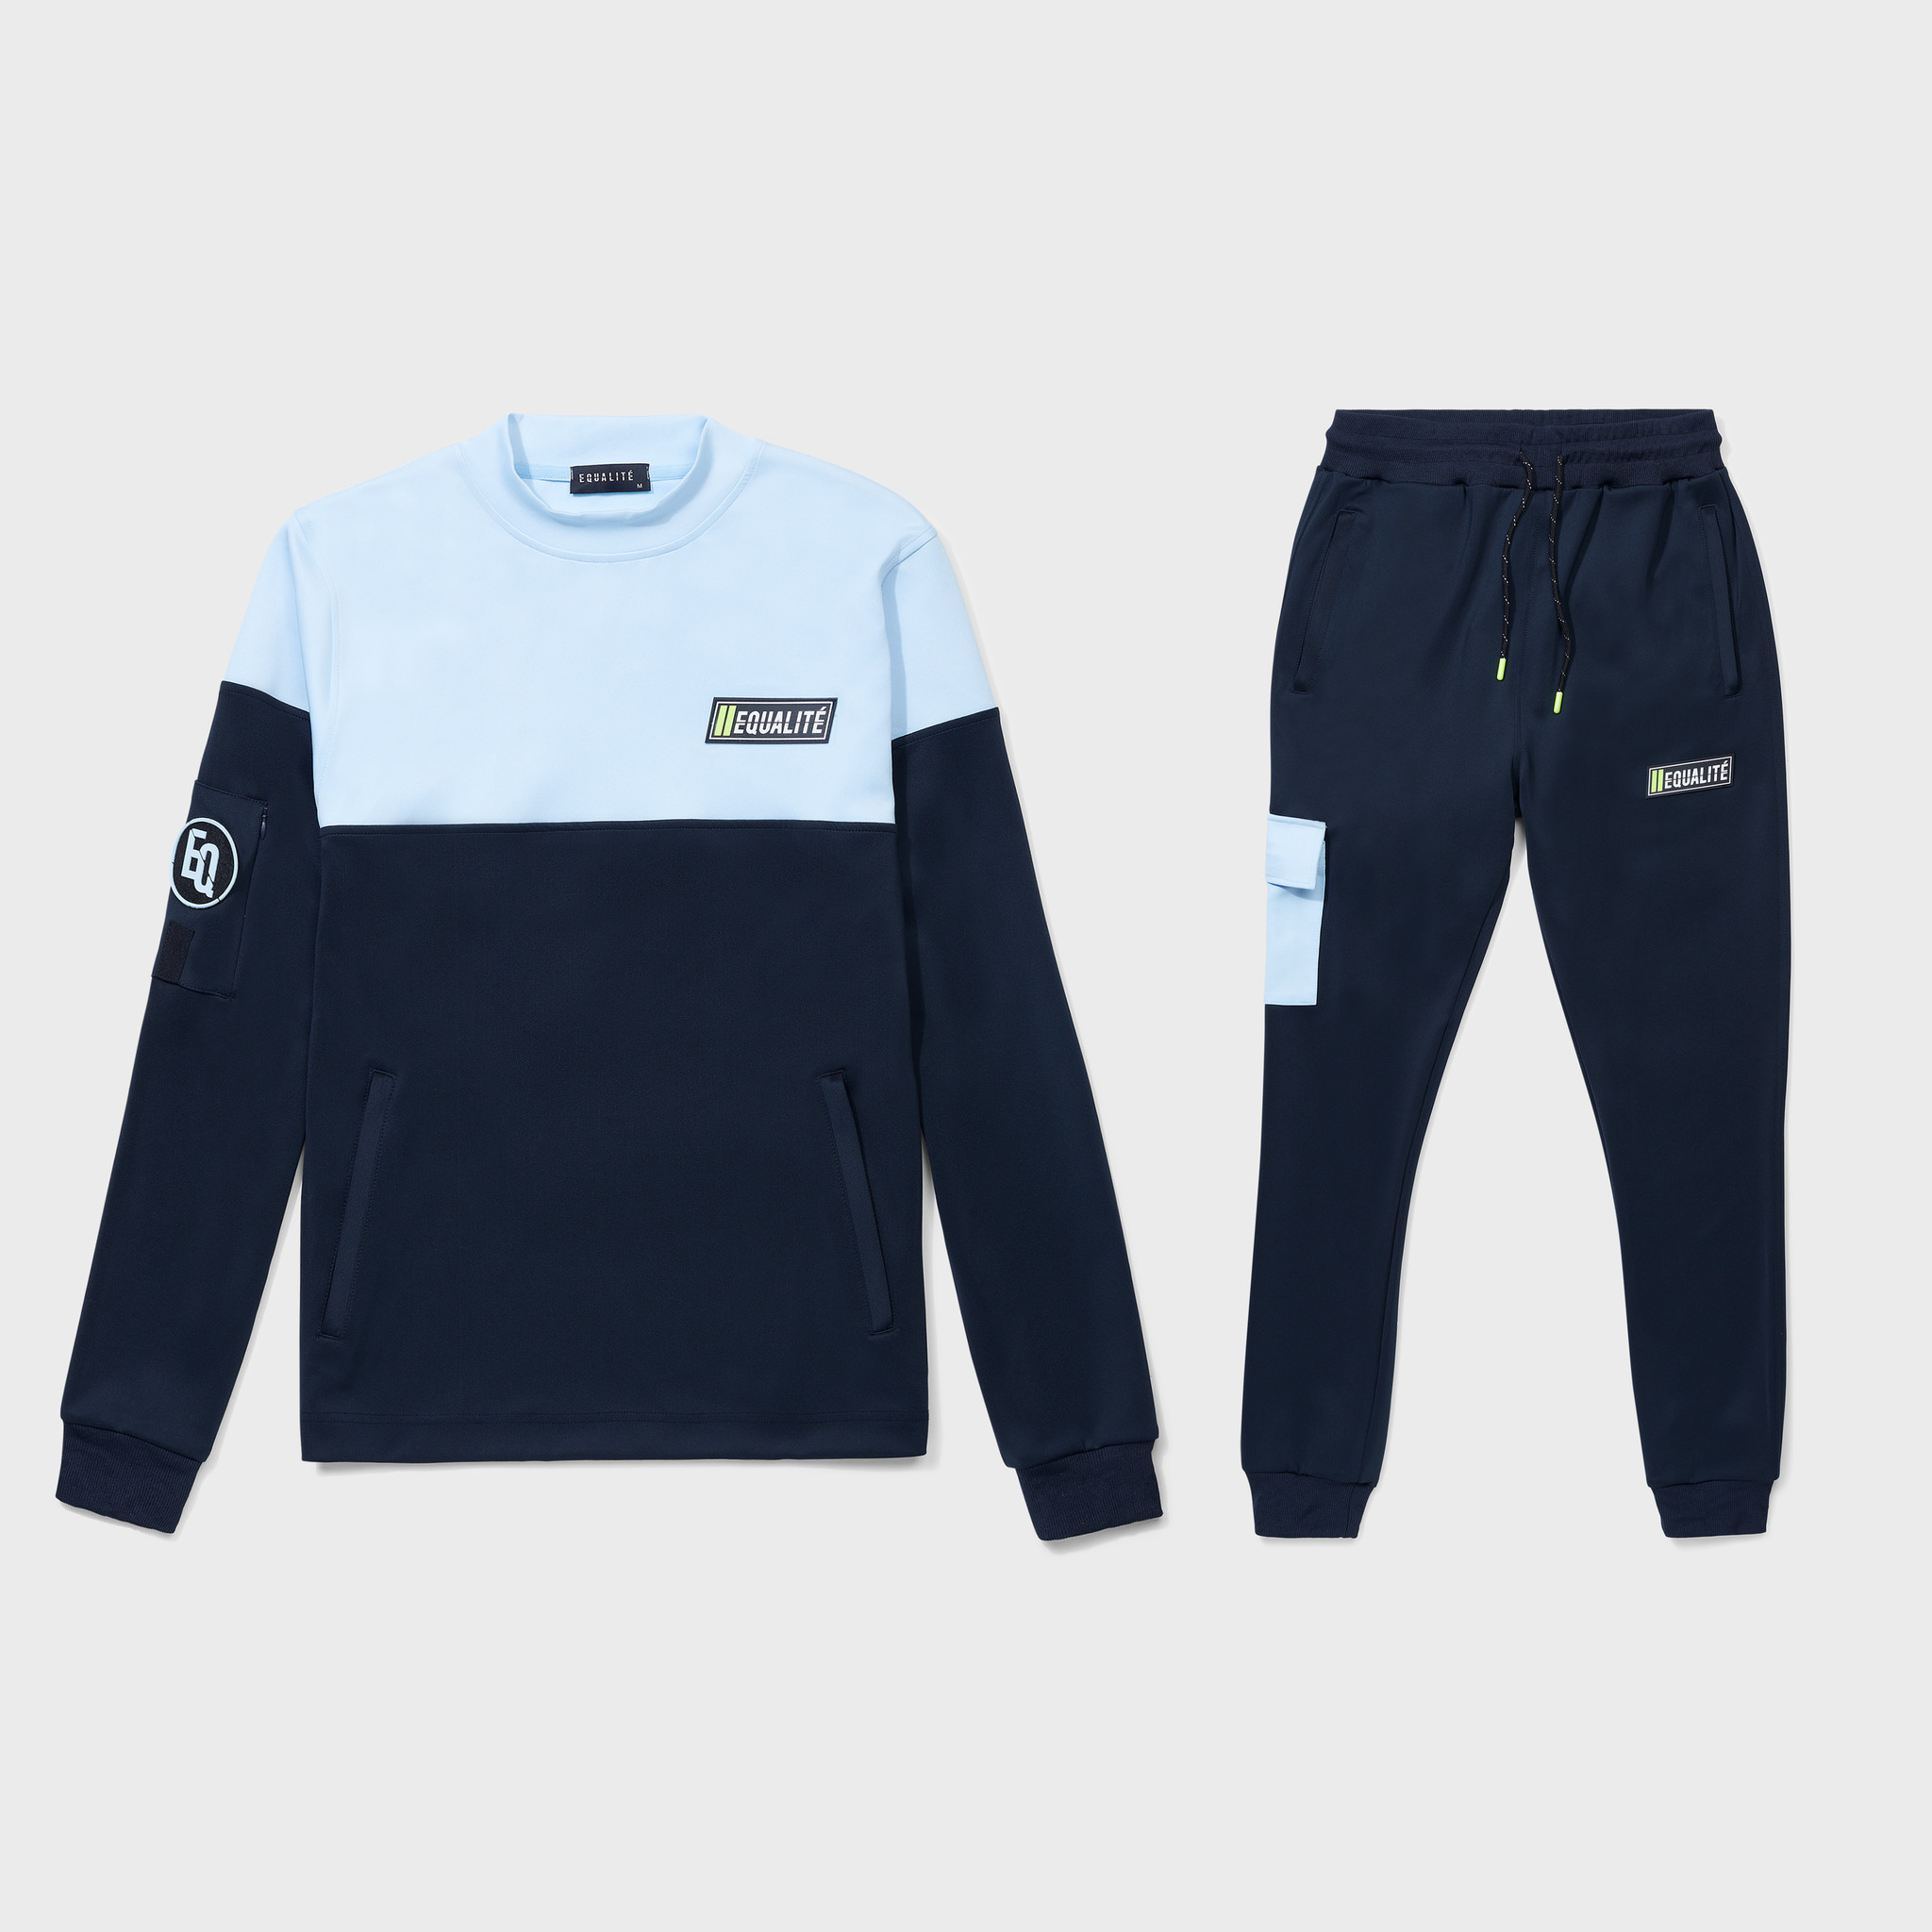 FUTURE POLYESTER TRACKSUIT NAVY & LIGHT BLUE-1